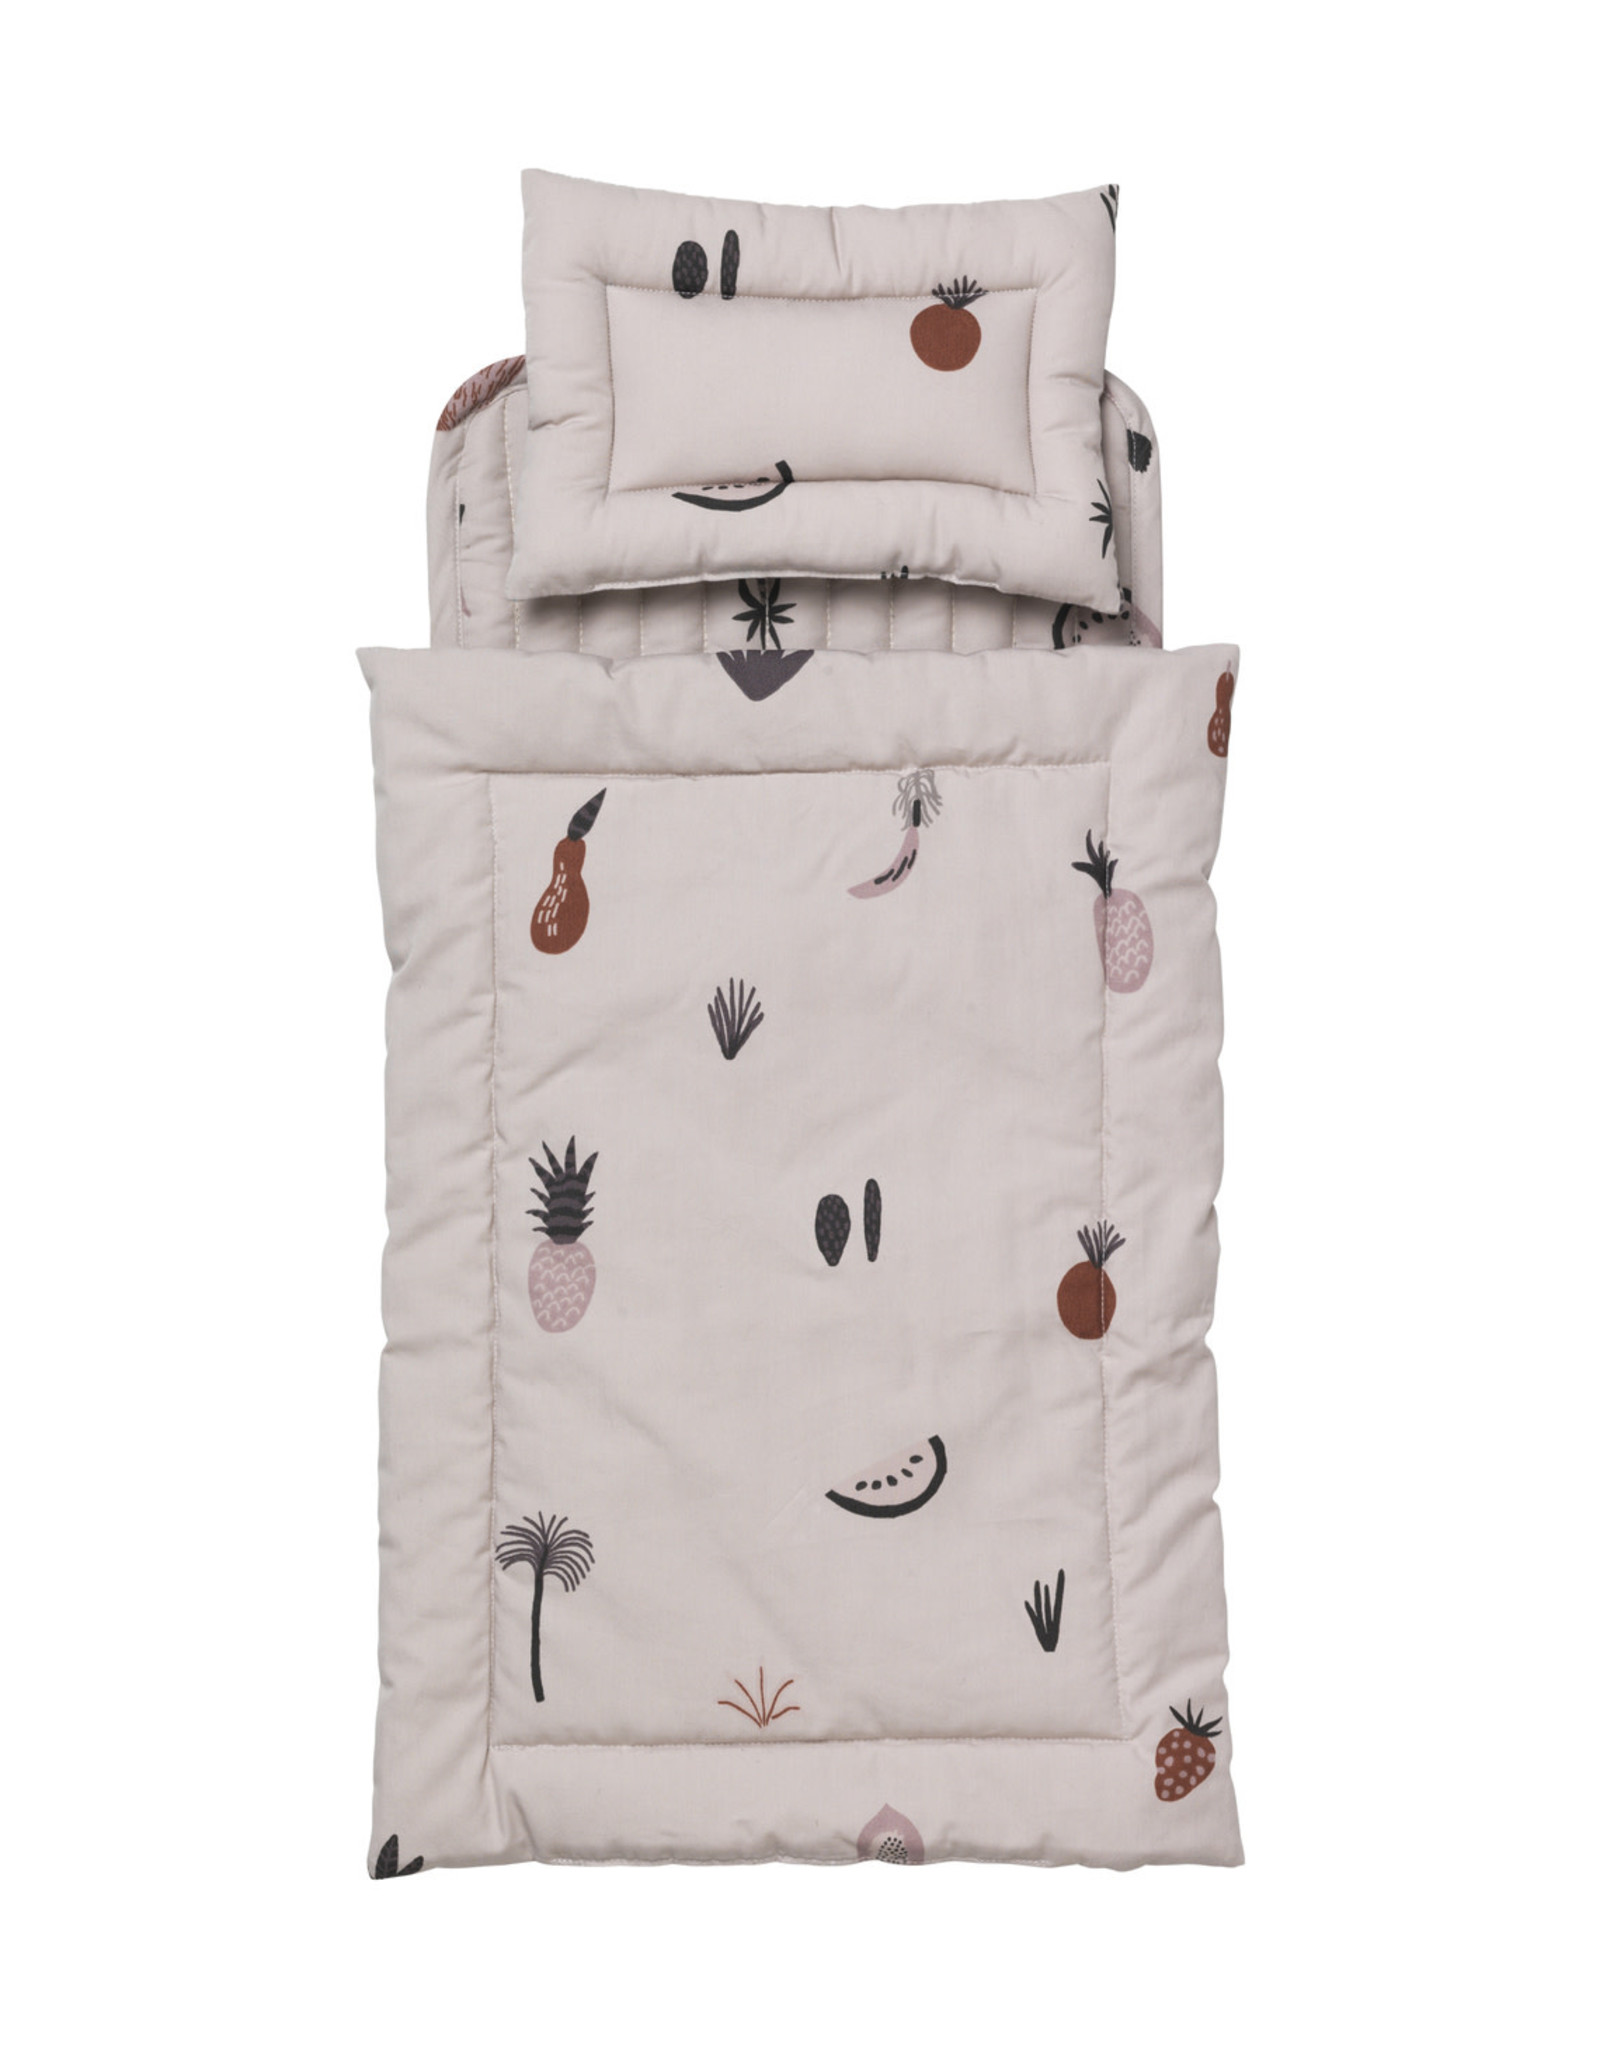 Ferm Living Fruiticana Doll Bedding Quilted Set